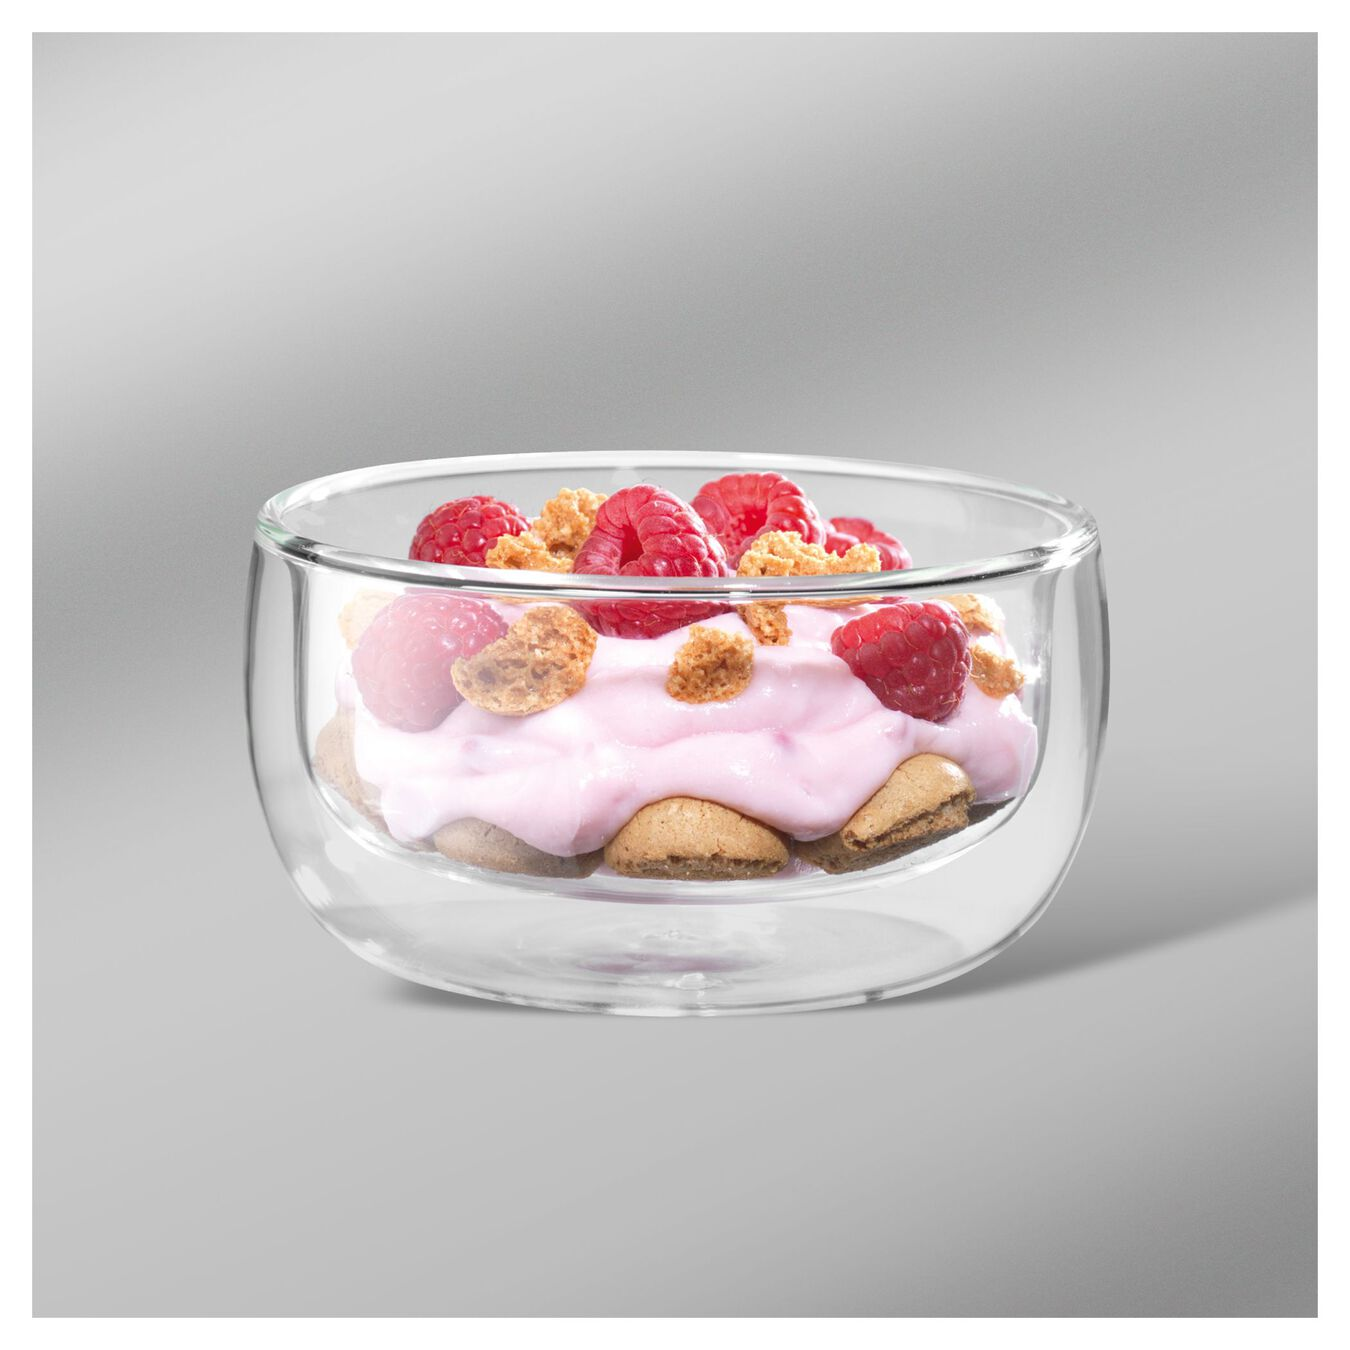 2 Piece Double-Wall Glass Bowl Set,,large 2